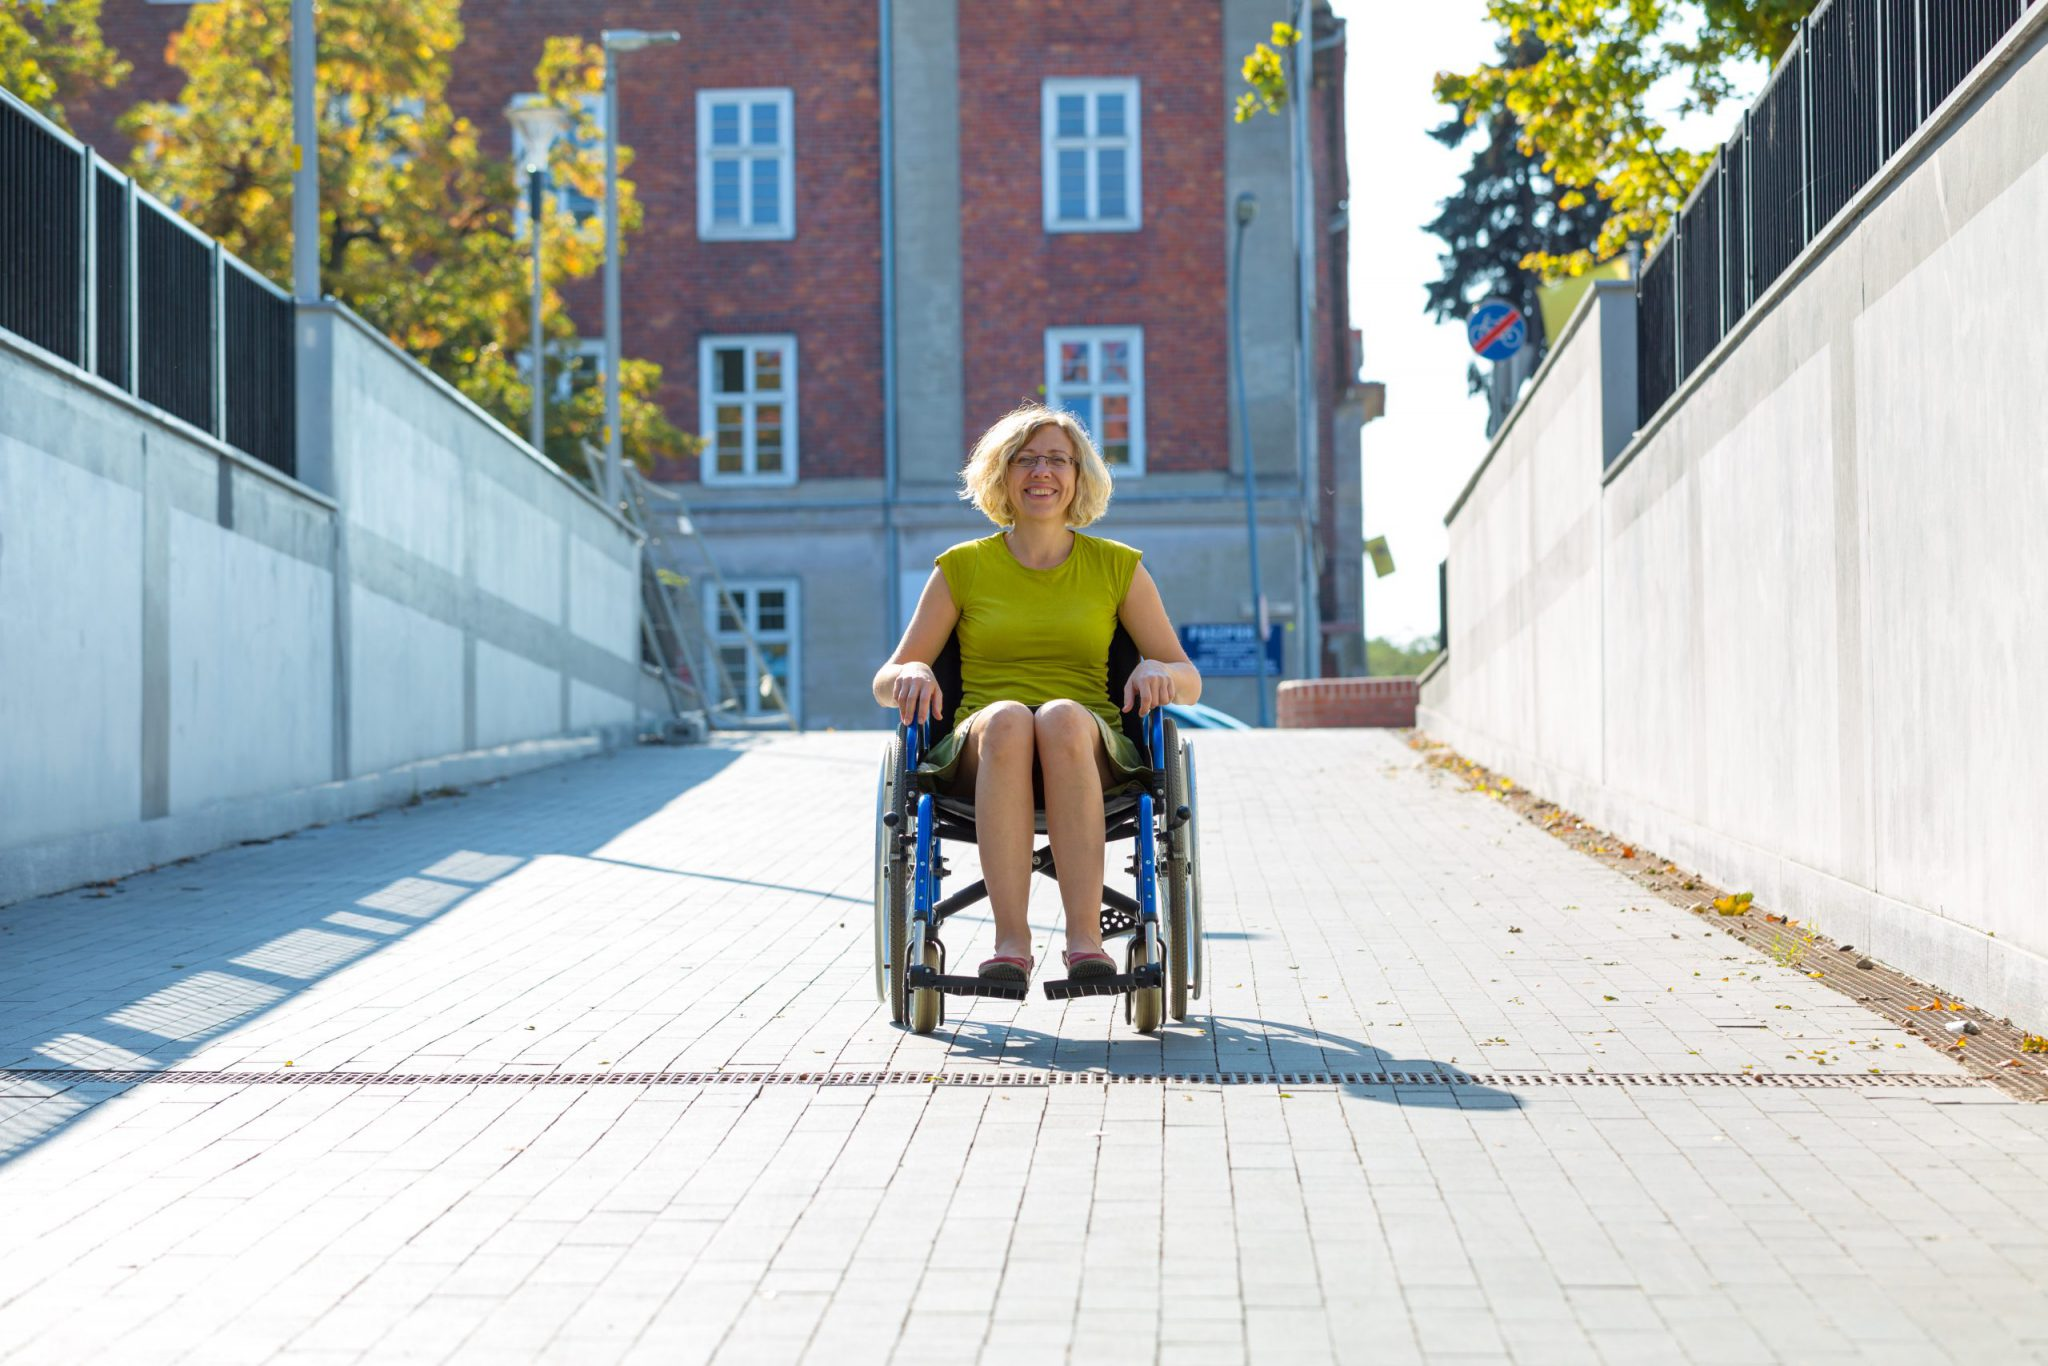 The OBOA partners with the Ministry for Seniors and Accessibility to help remove barriers in buildings and spaces across Ontario